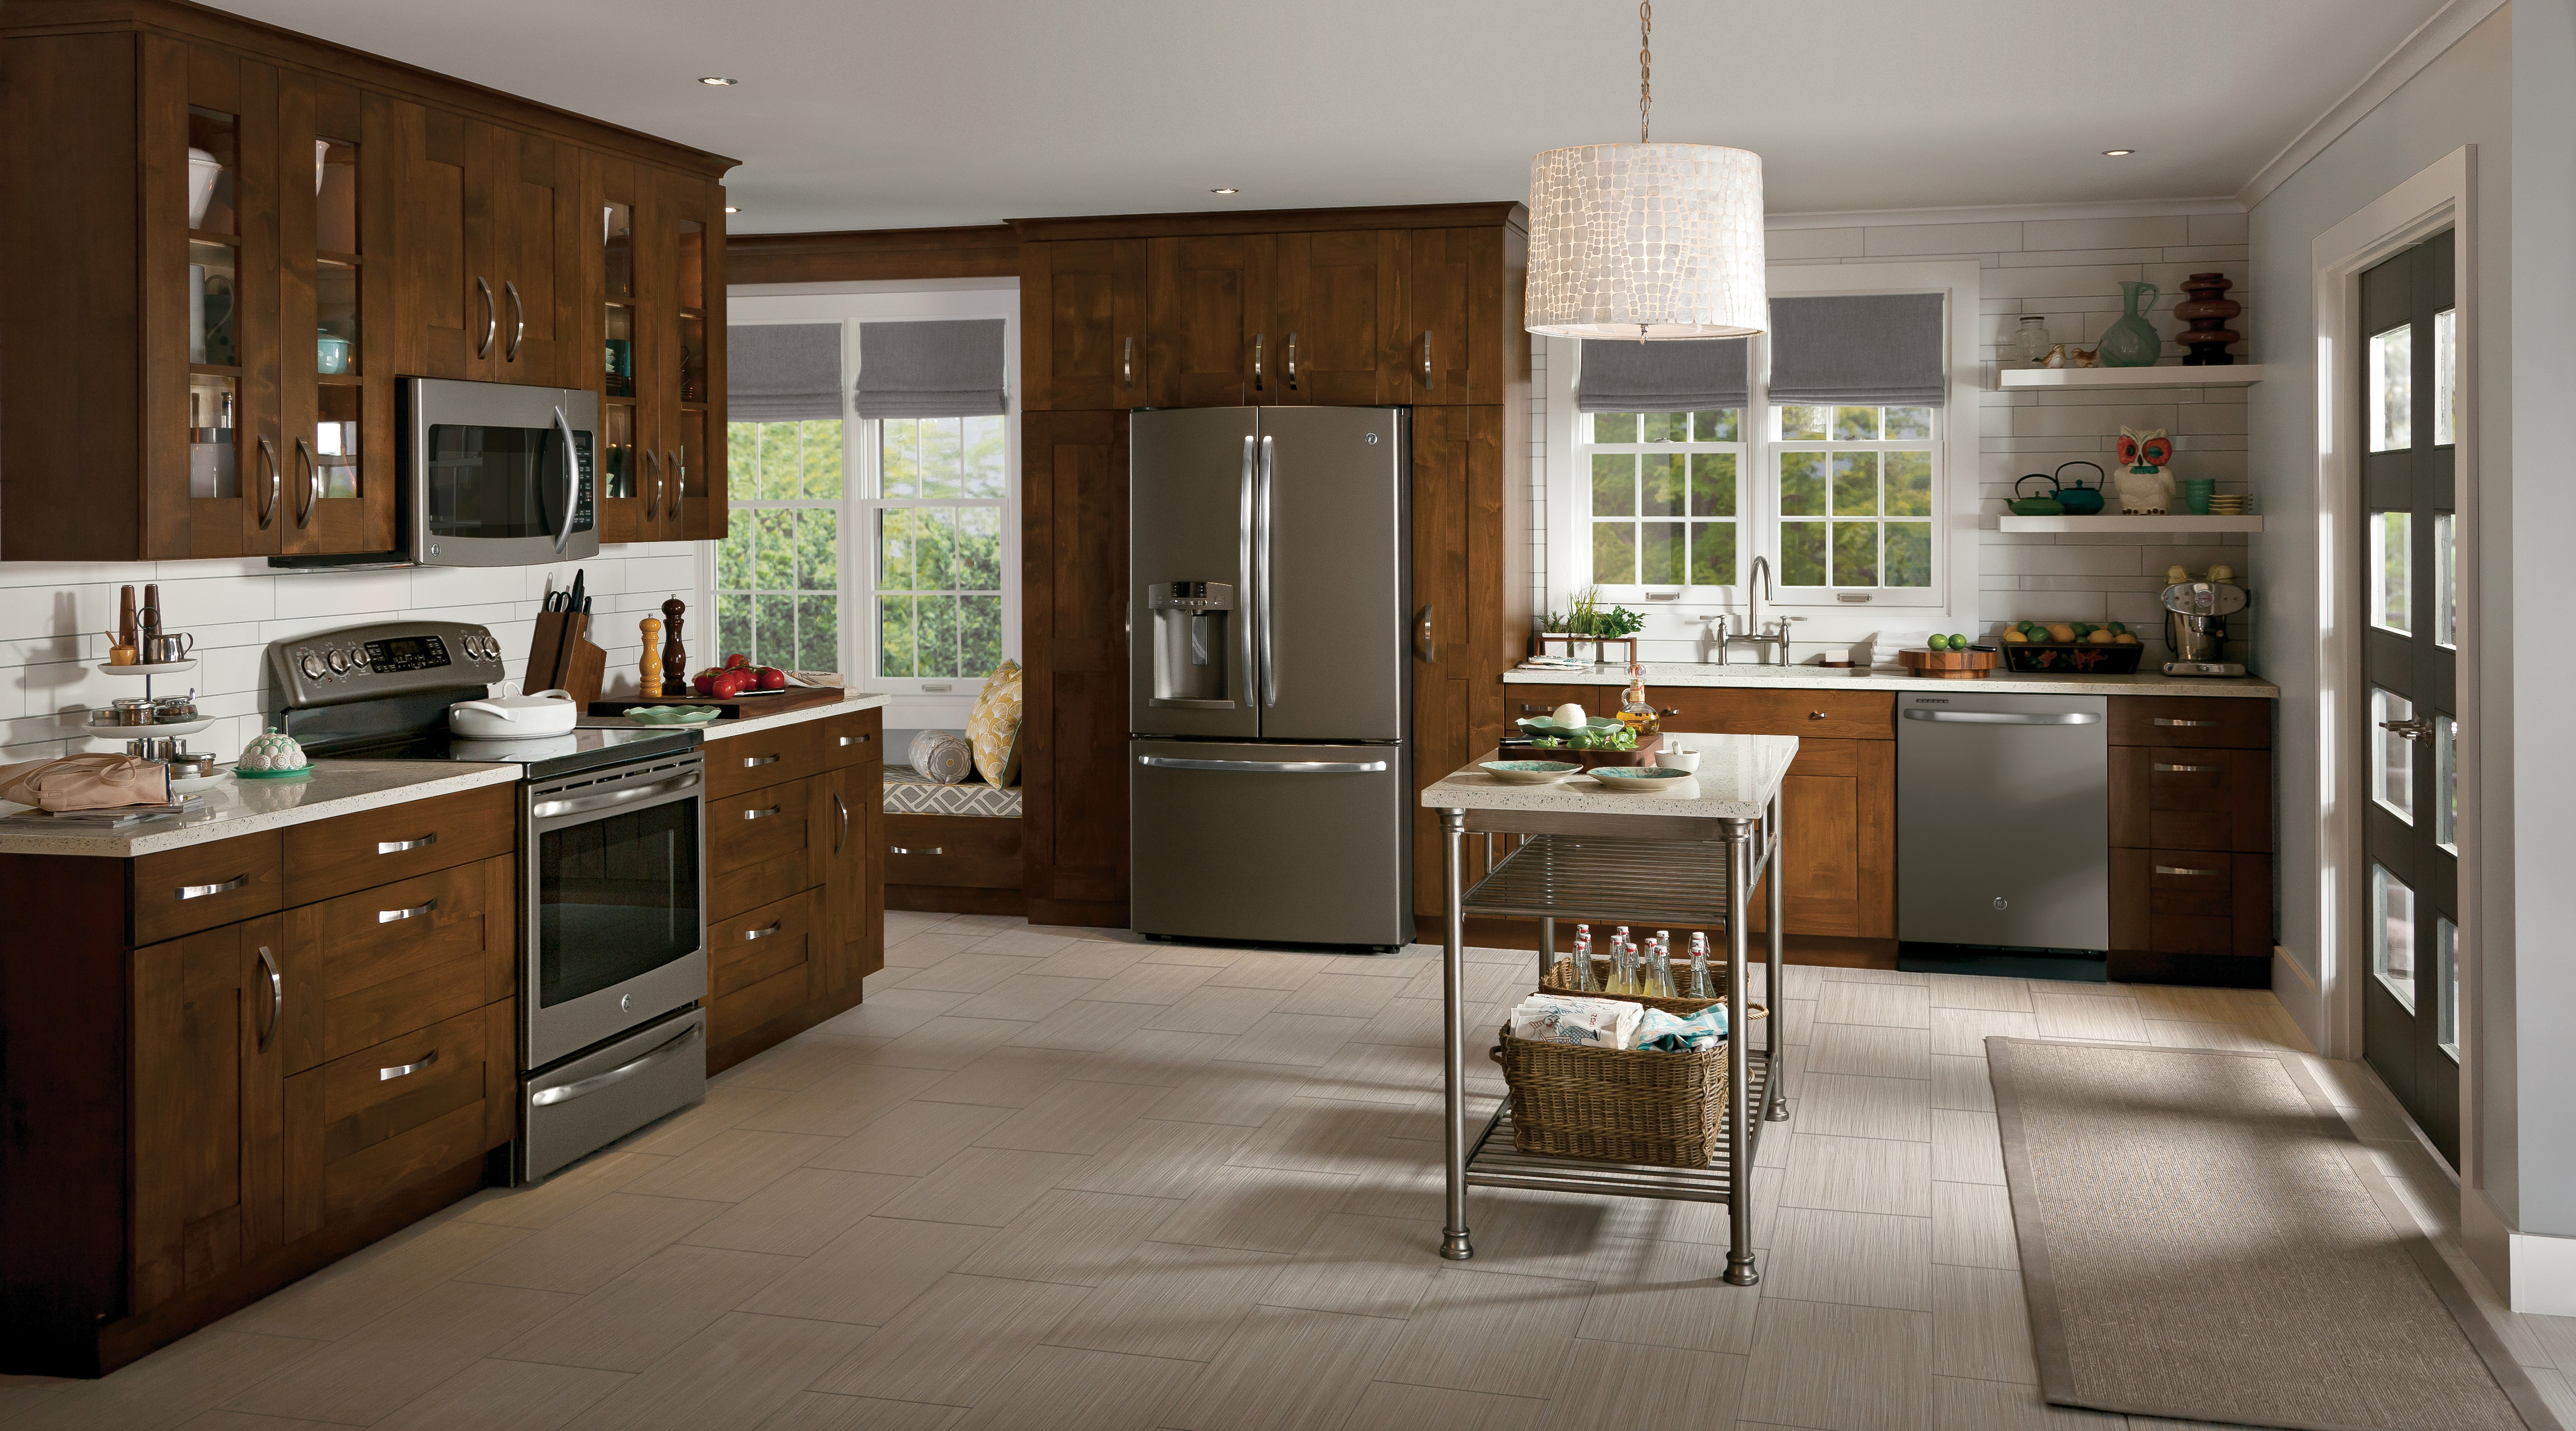 Design Ge Slate Refrigerator sleek and chic ge expands popular slate finish to more appliances slate